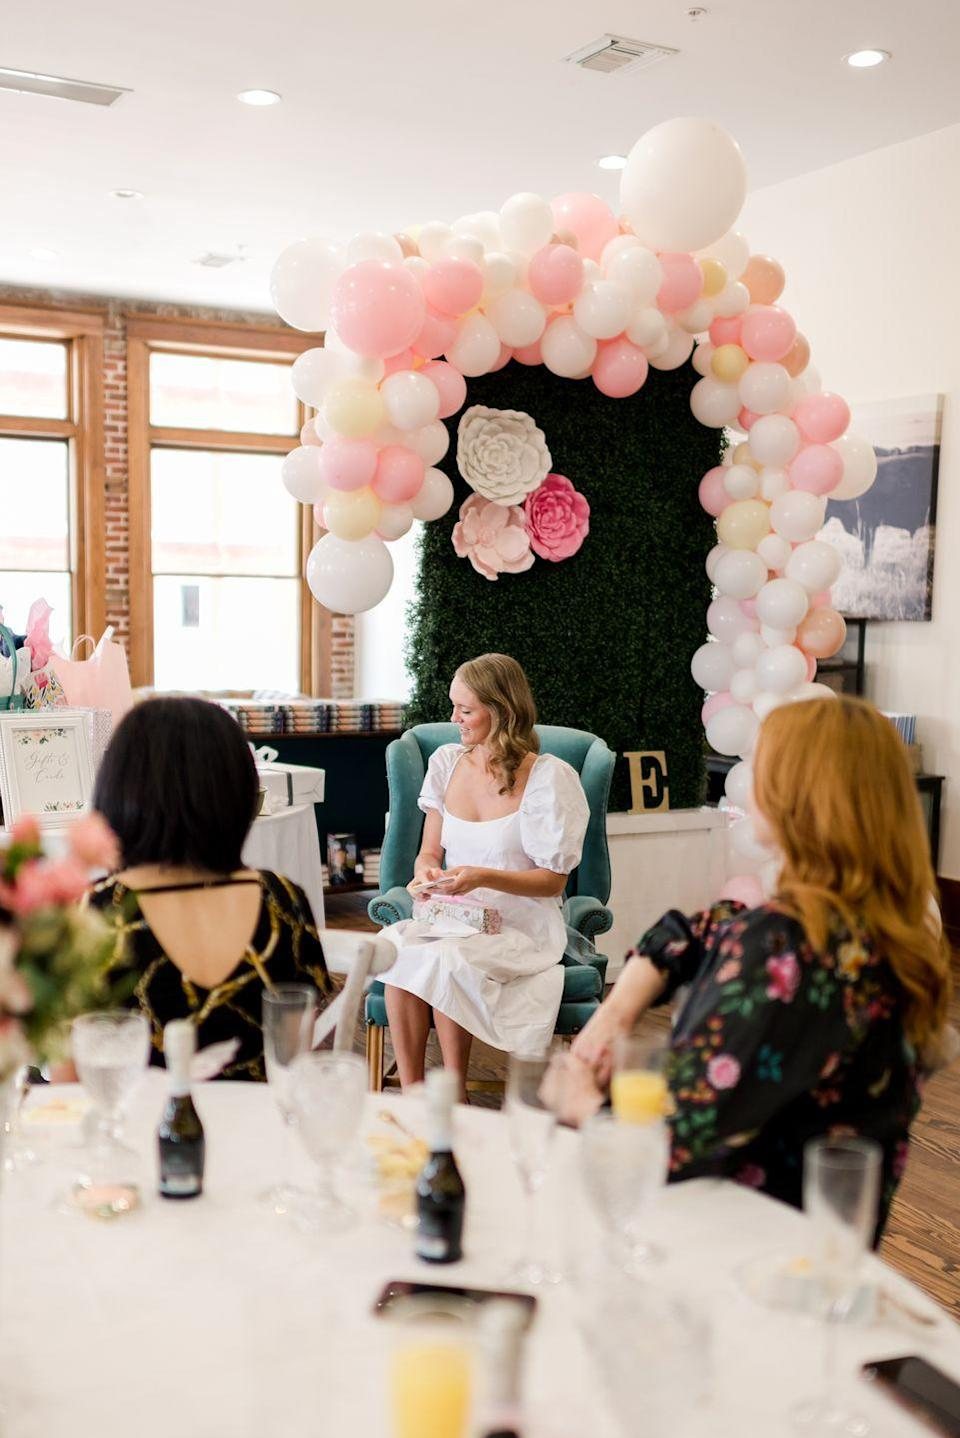 <p>I guess I don't go to wedding showers very often, because I forgot about the part where the bride opens gifts. It reminded me of the 1980's! That was a strange thing to say, haha! (I told you I don't go to wedding showers very often!)</p>